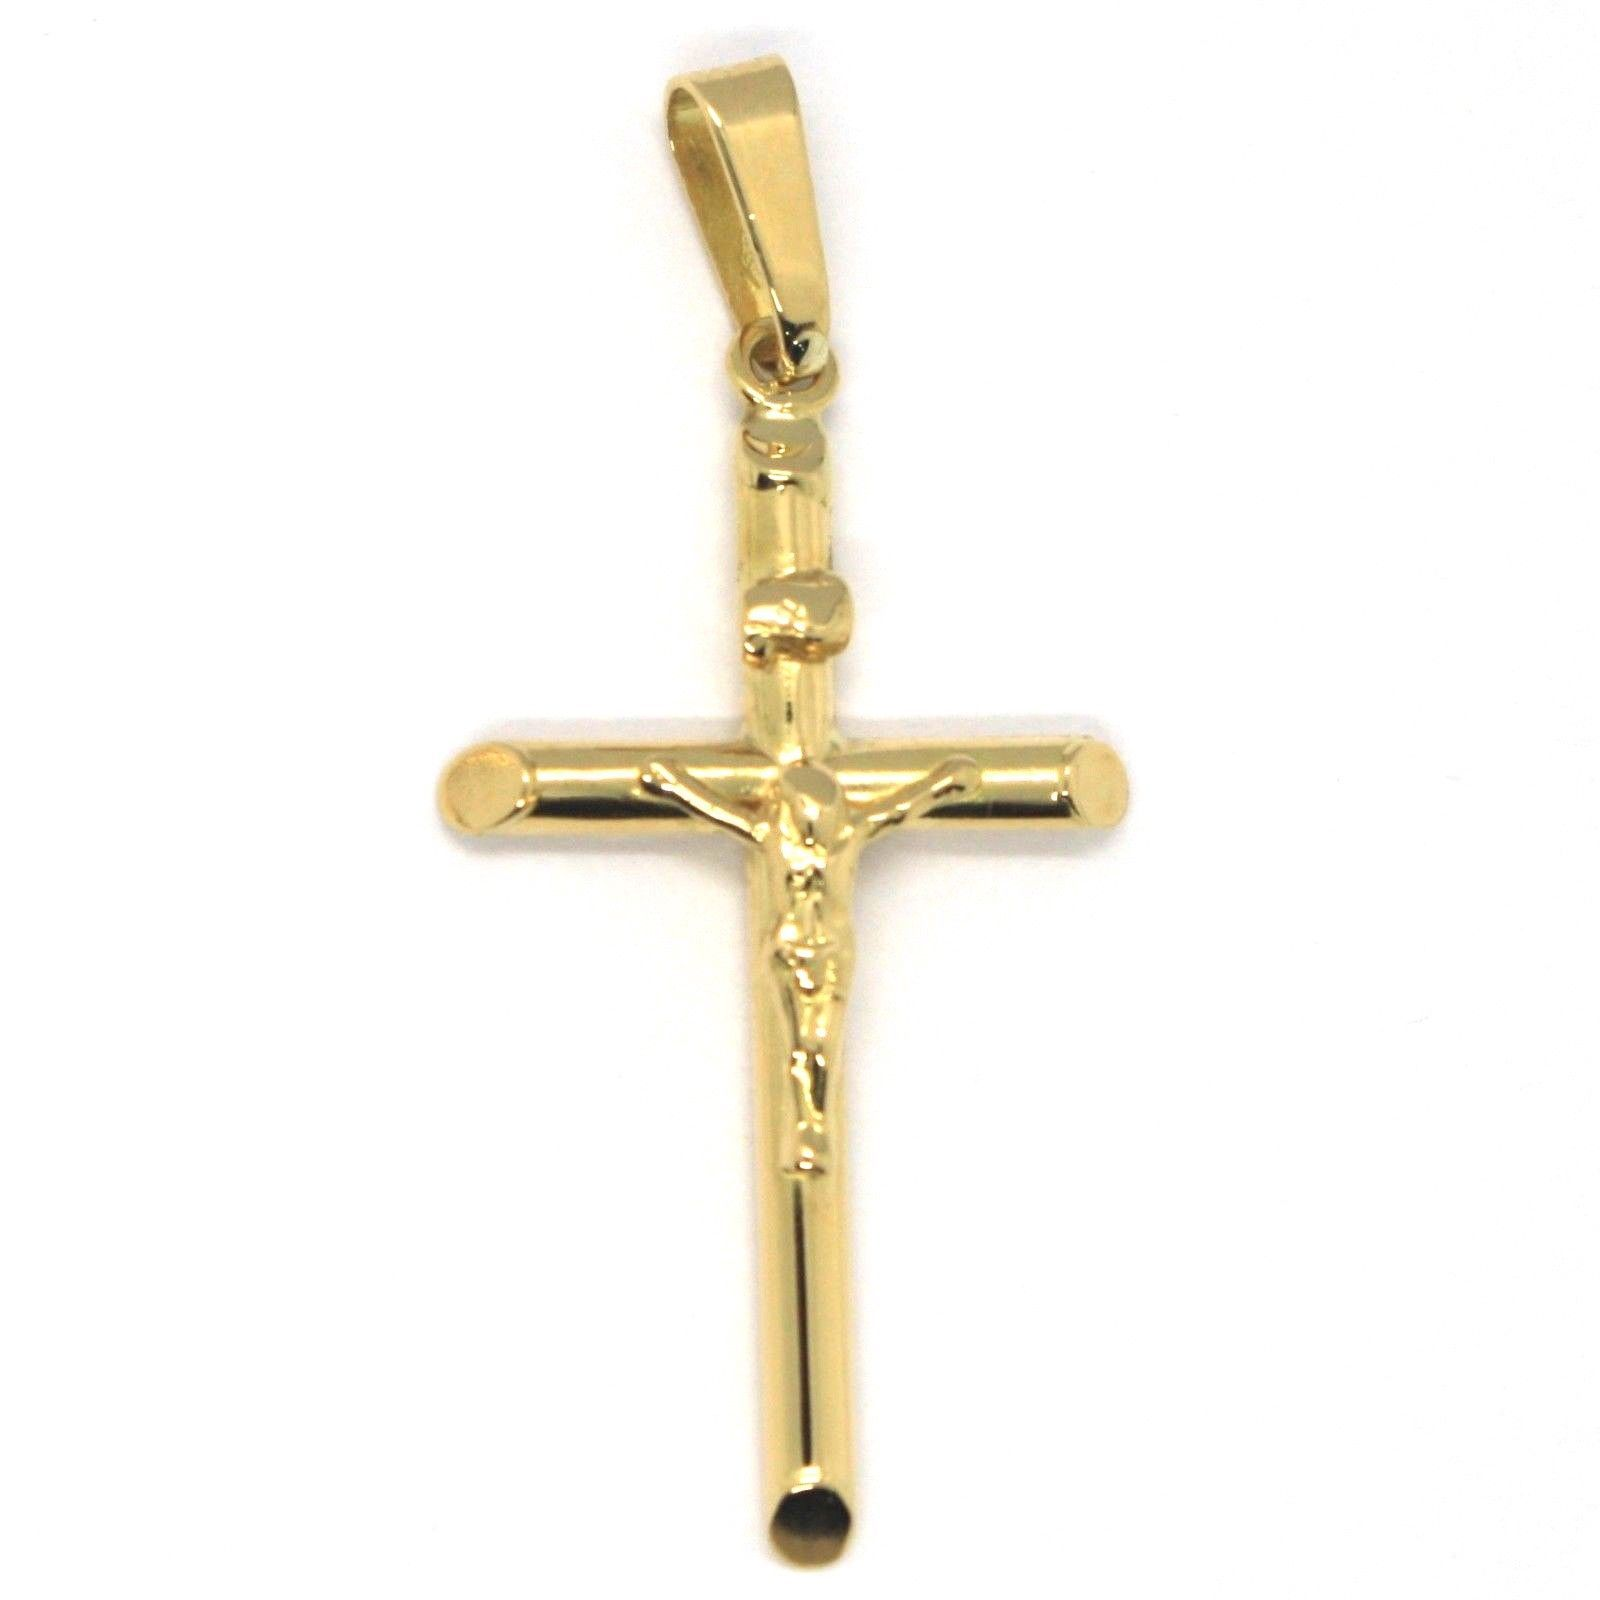 18K YELLOW GOLD BIG TUBE ROUND CROSS WITH JESUS MADE IN ITALY, 45 mm, 1.8 INCHES